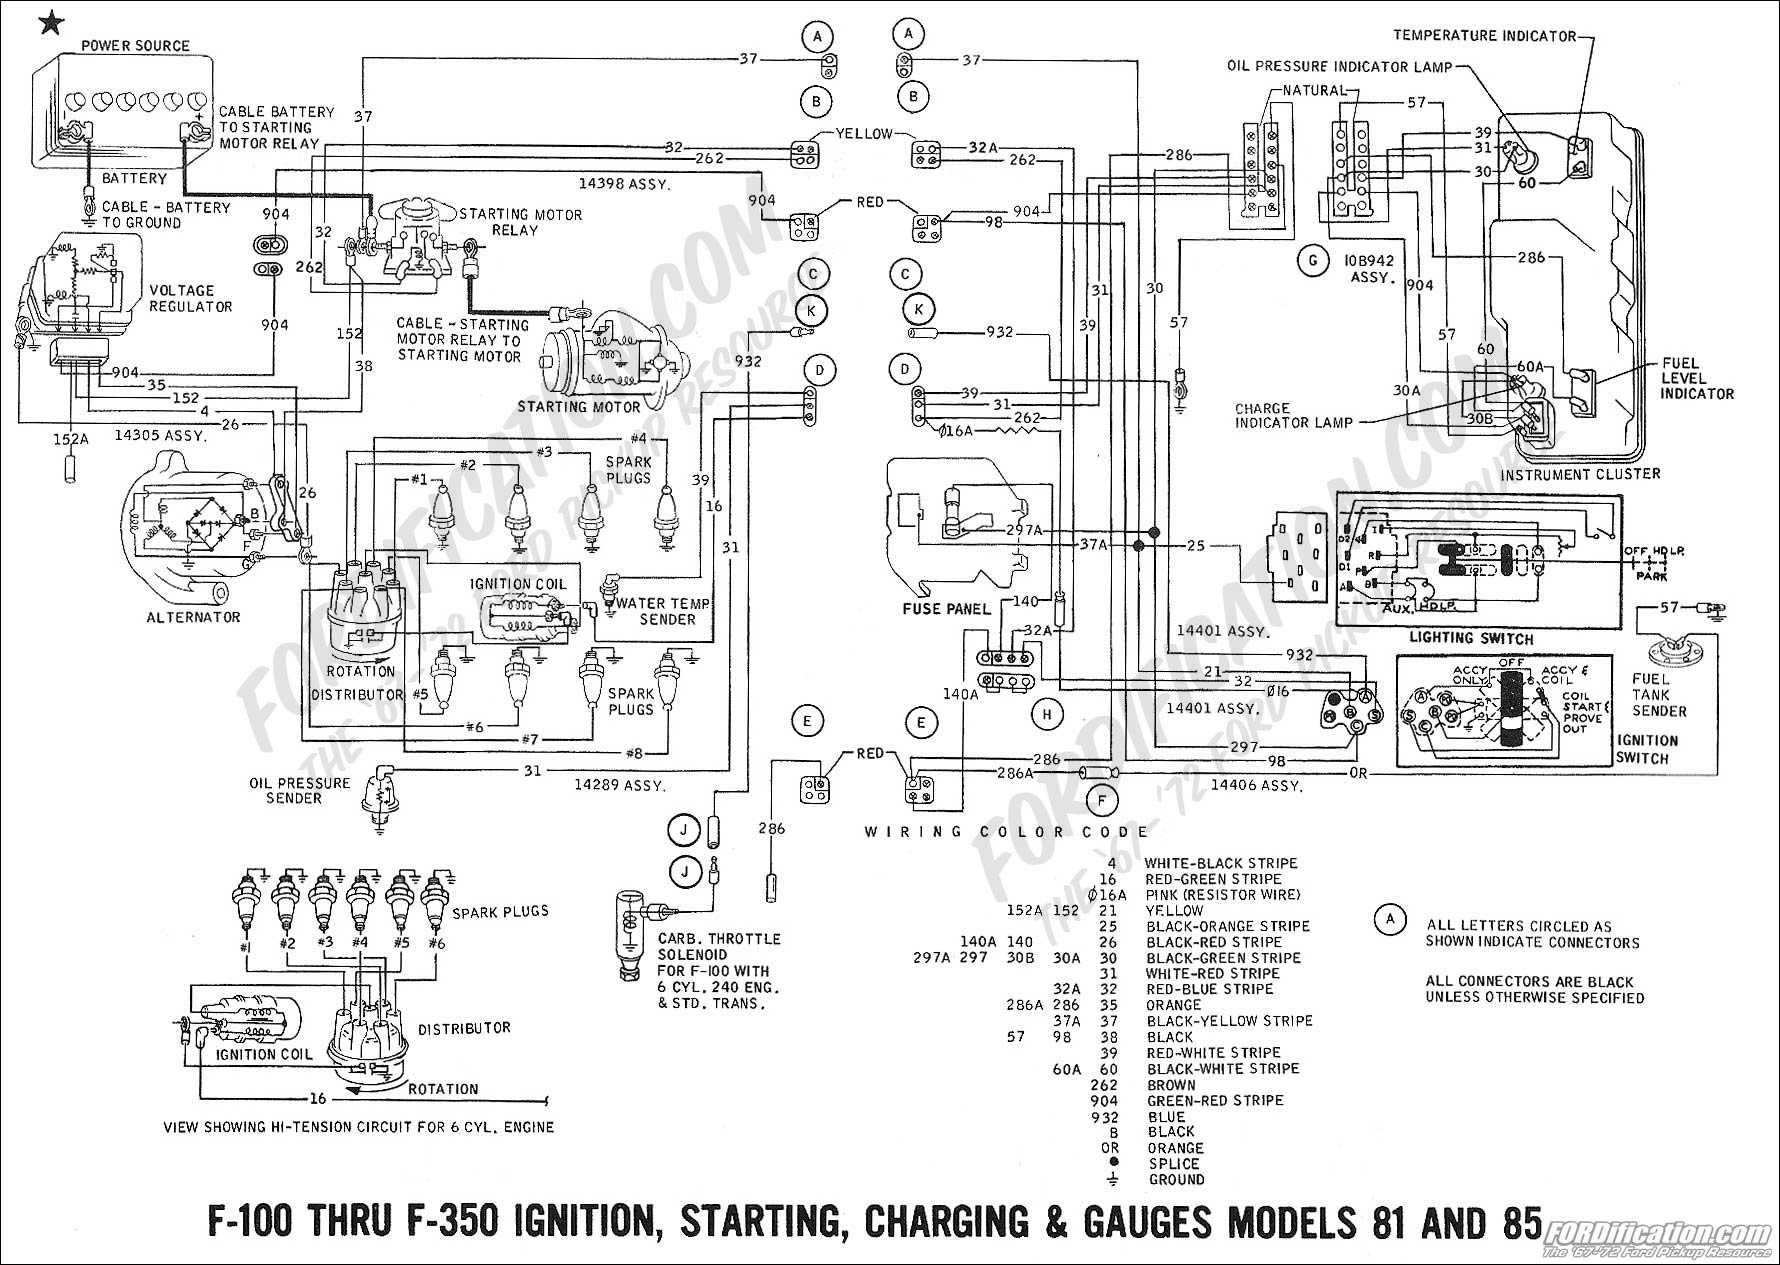 1975 Corvette Wiring Diagram Likewise 1988 Ford Ranger Light 1980 Data